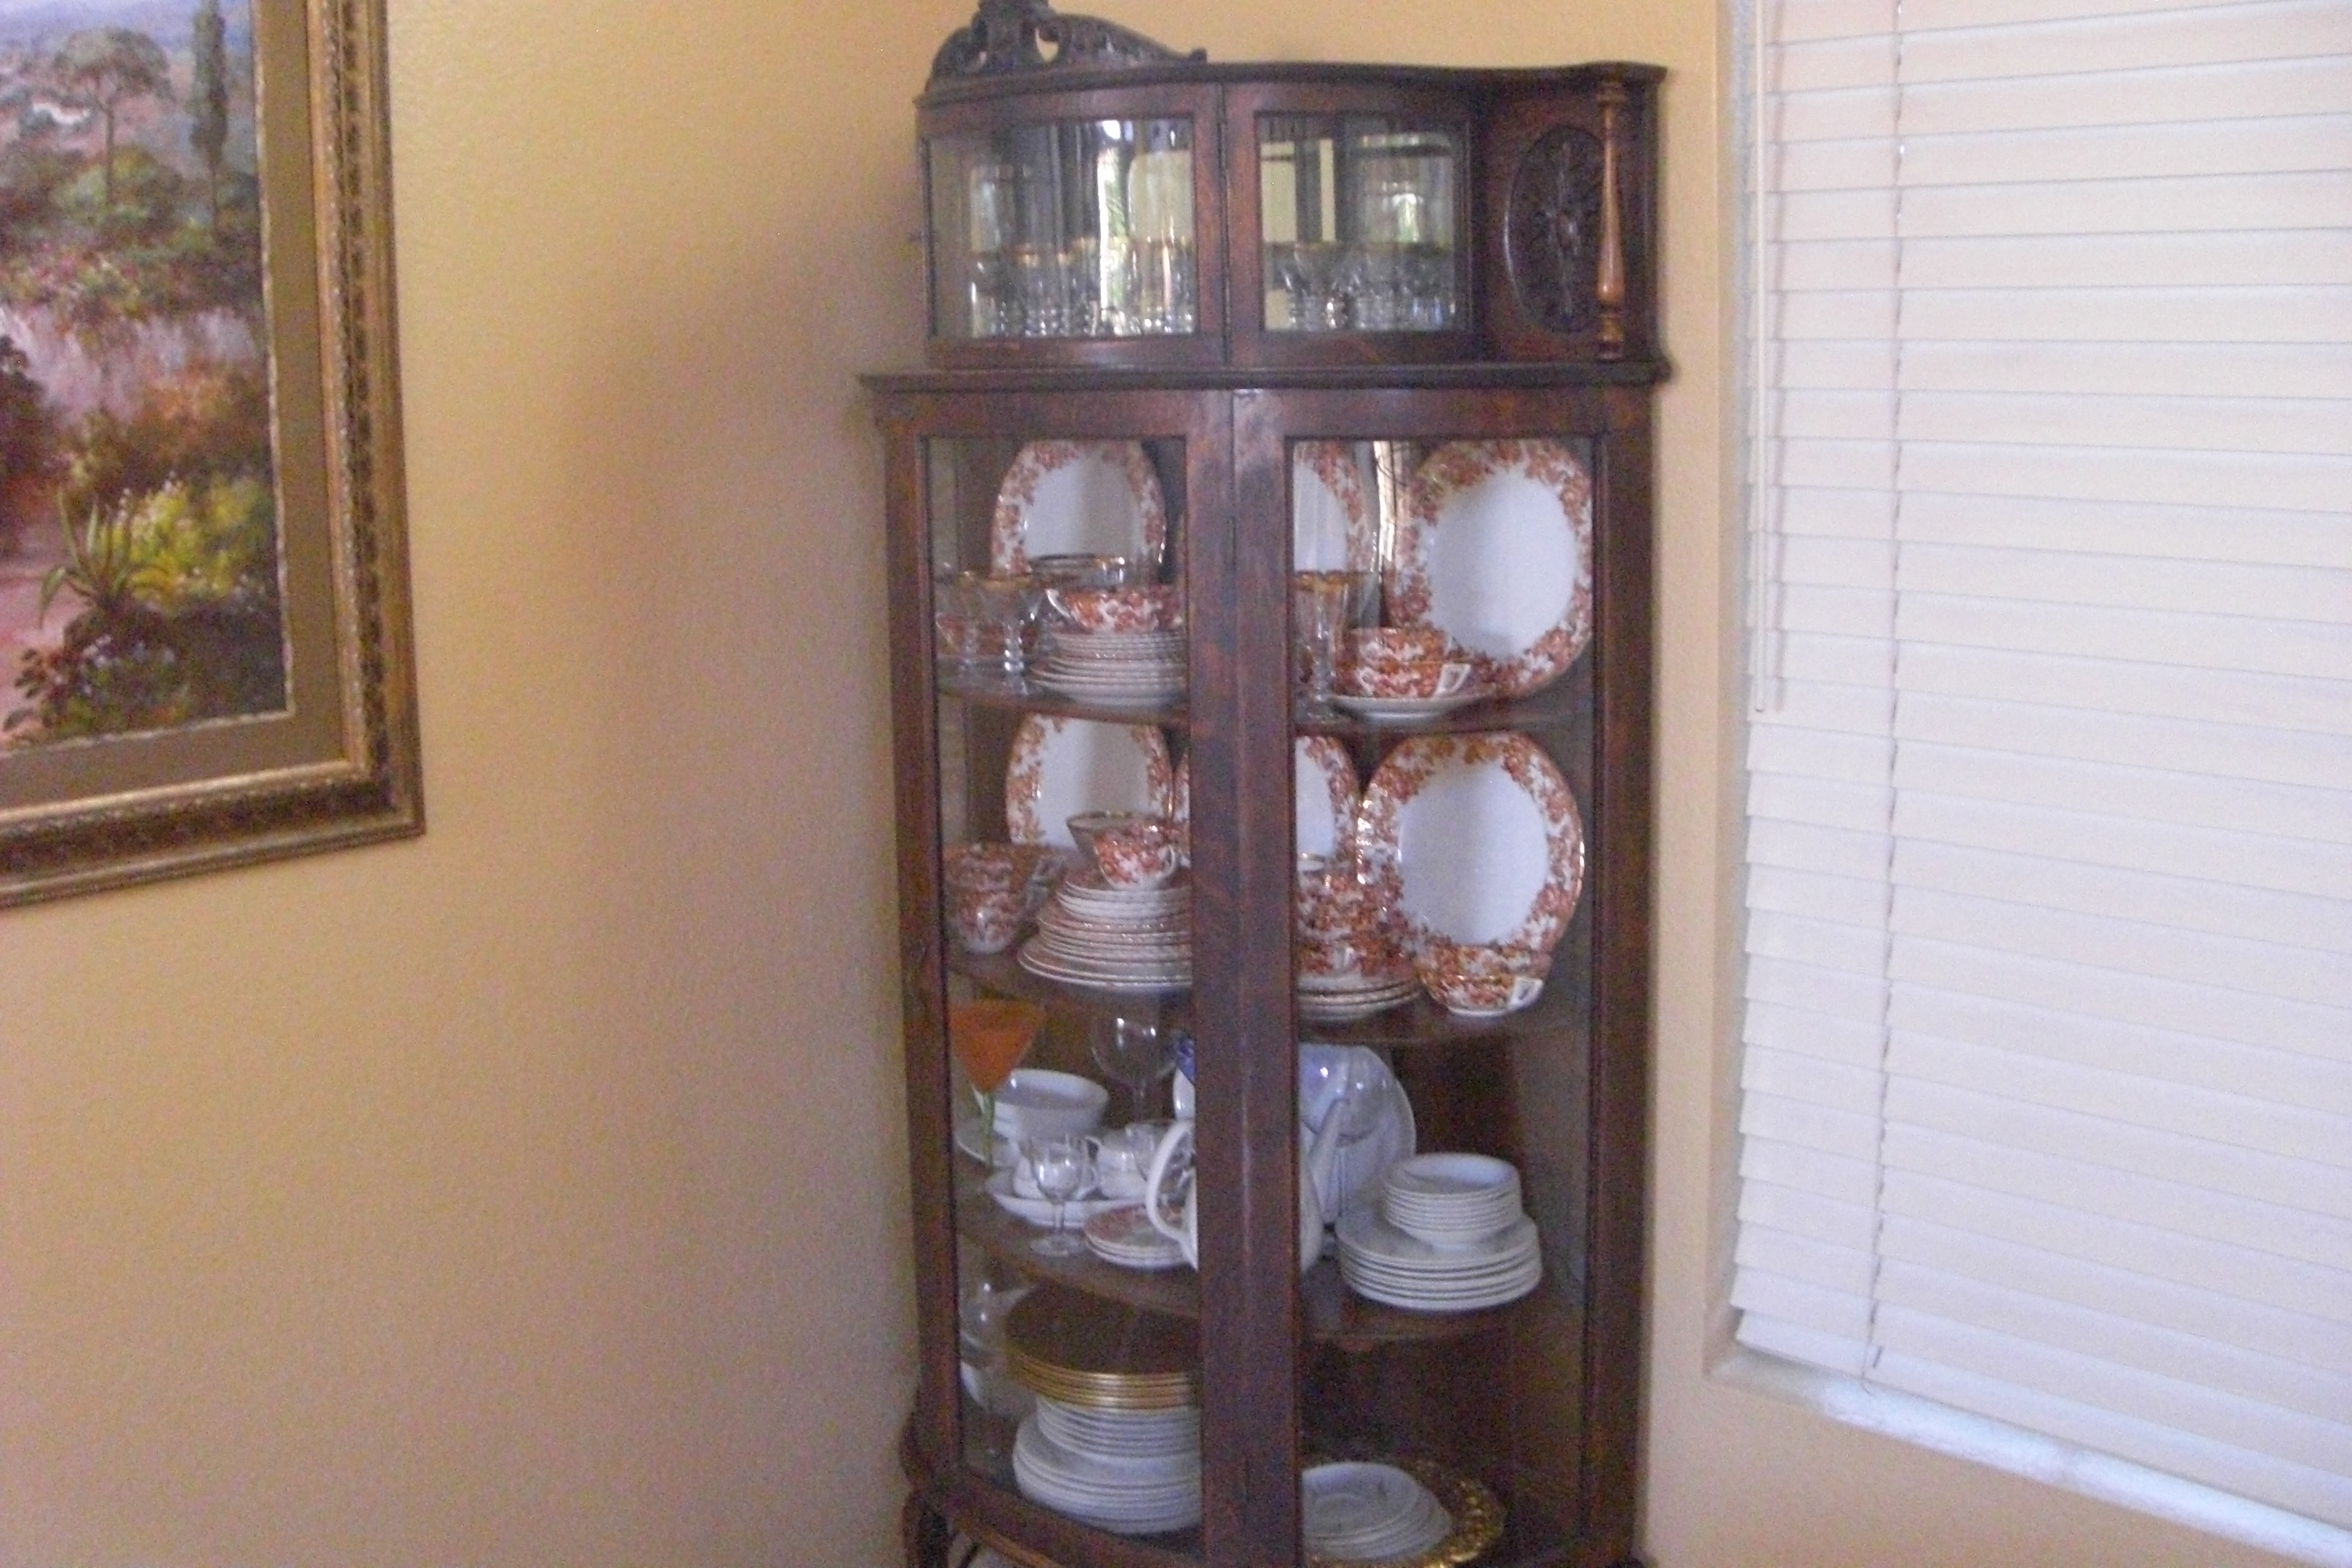 closet ideas best amsterdam for style closets and authentic china uncategorized pict antique outdoor elegant verzameling the blond of